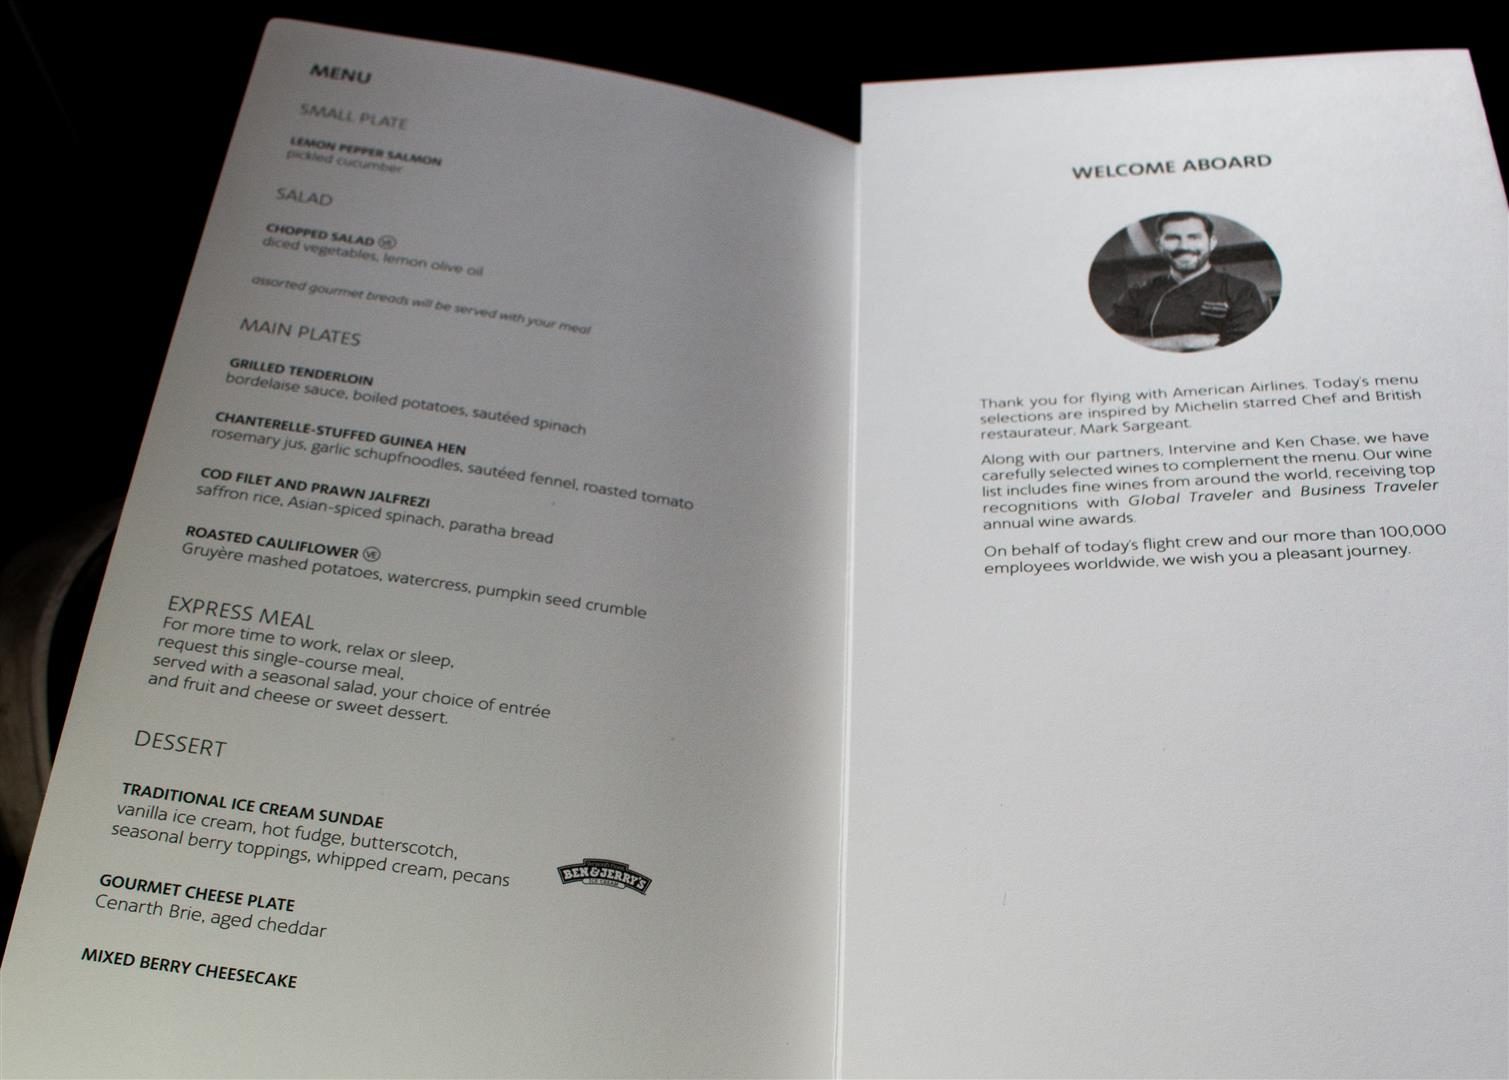 The Mark Sargeant-Inspired Menu!